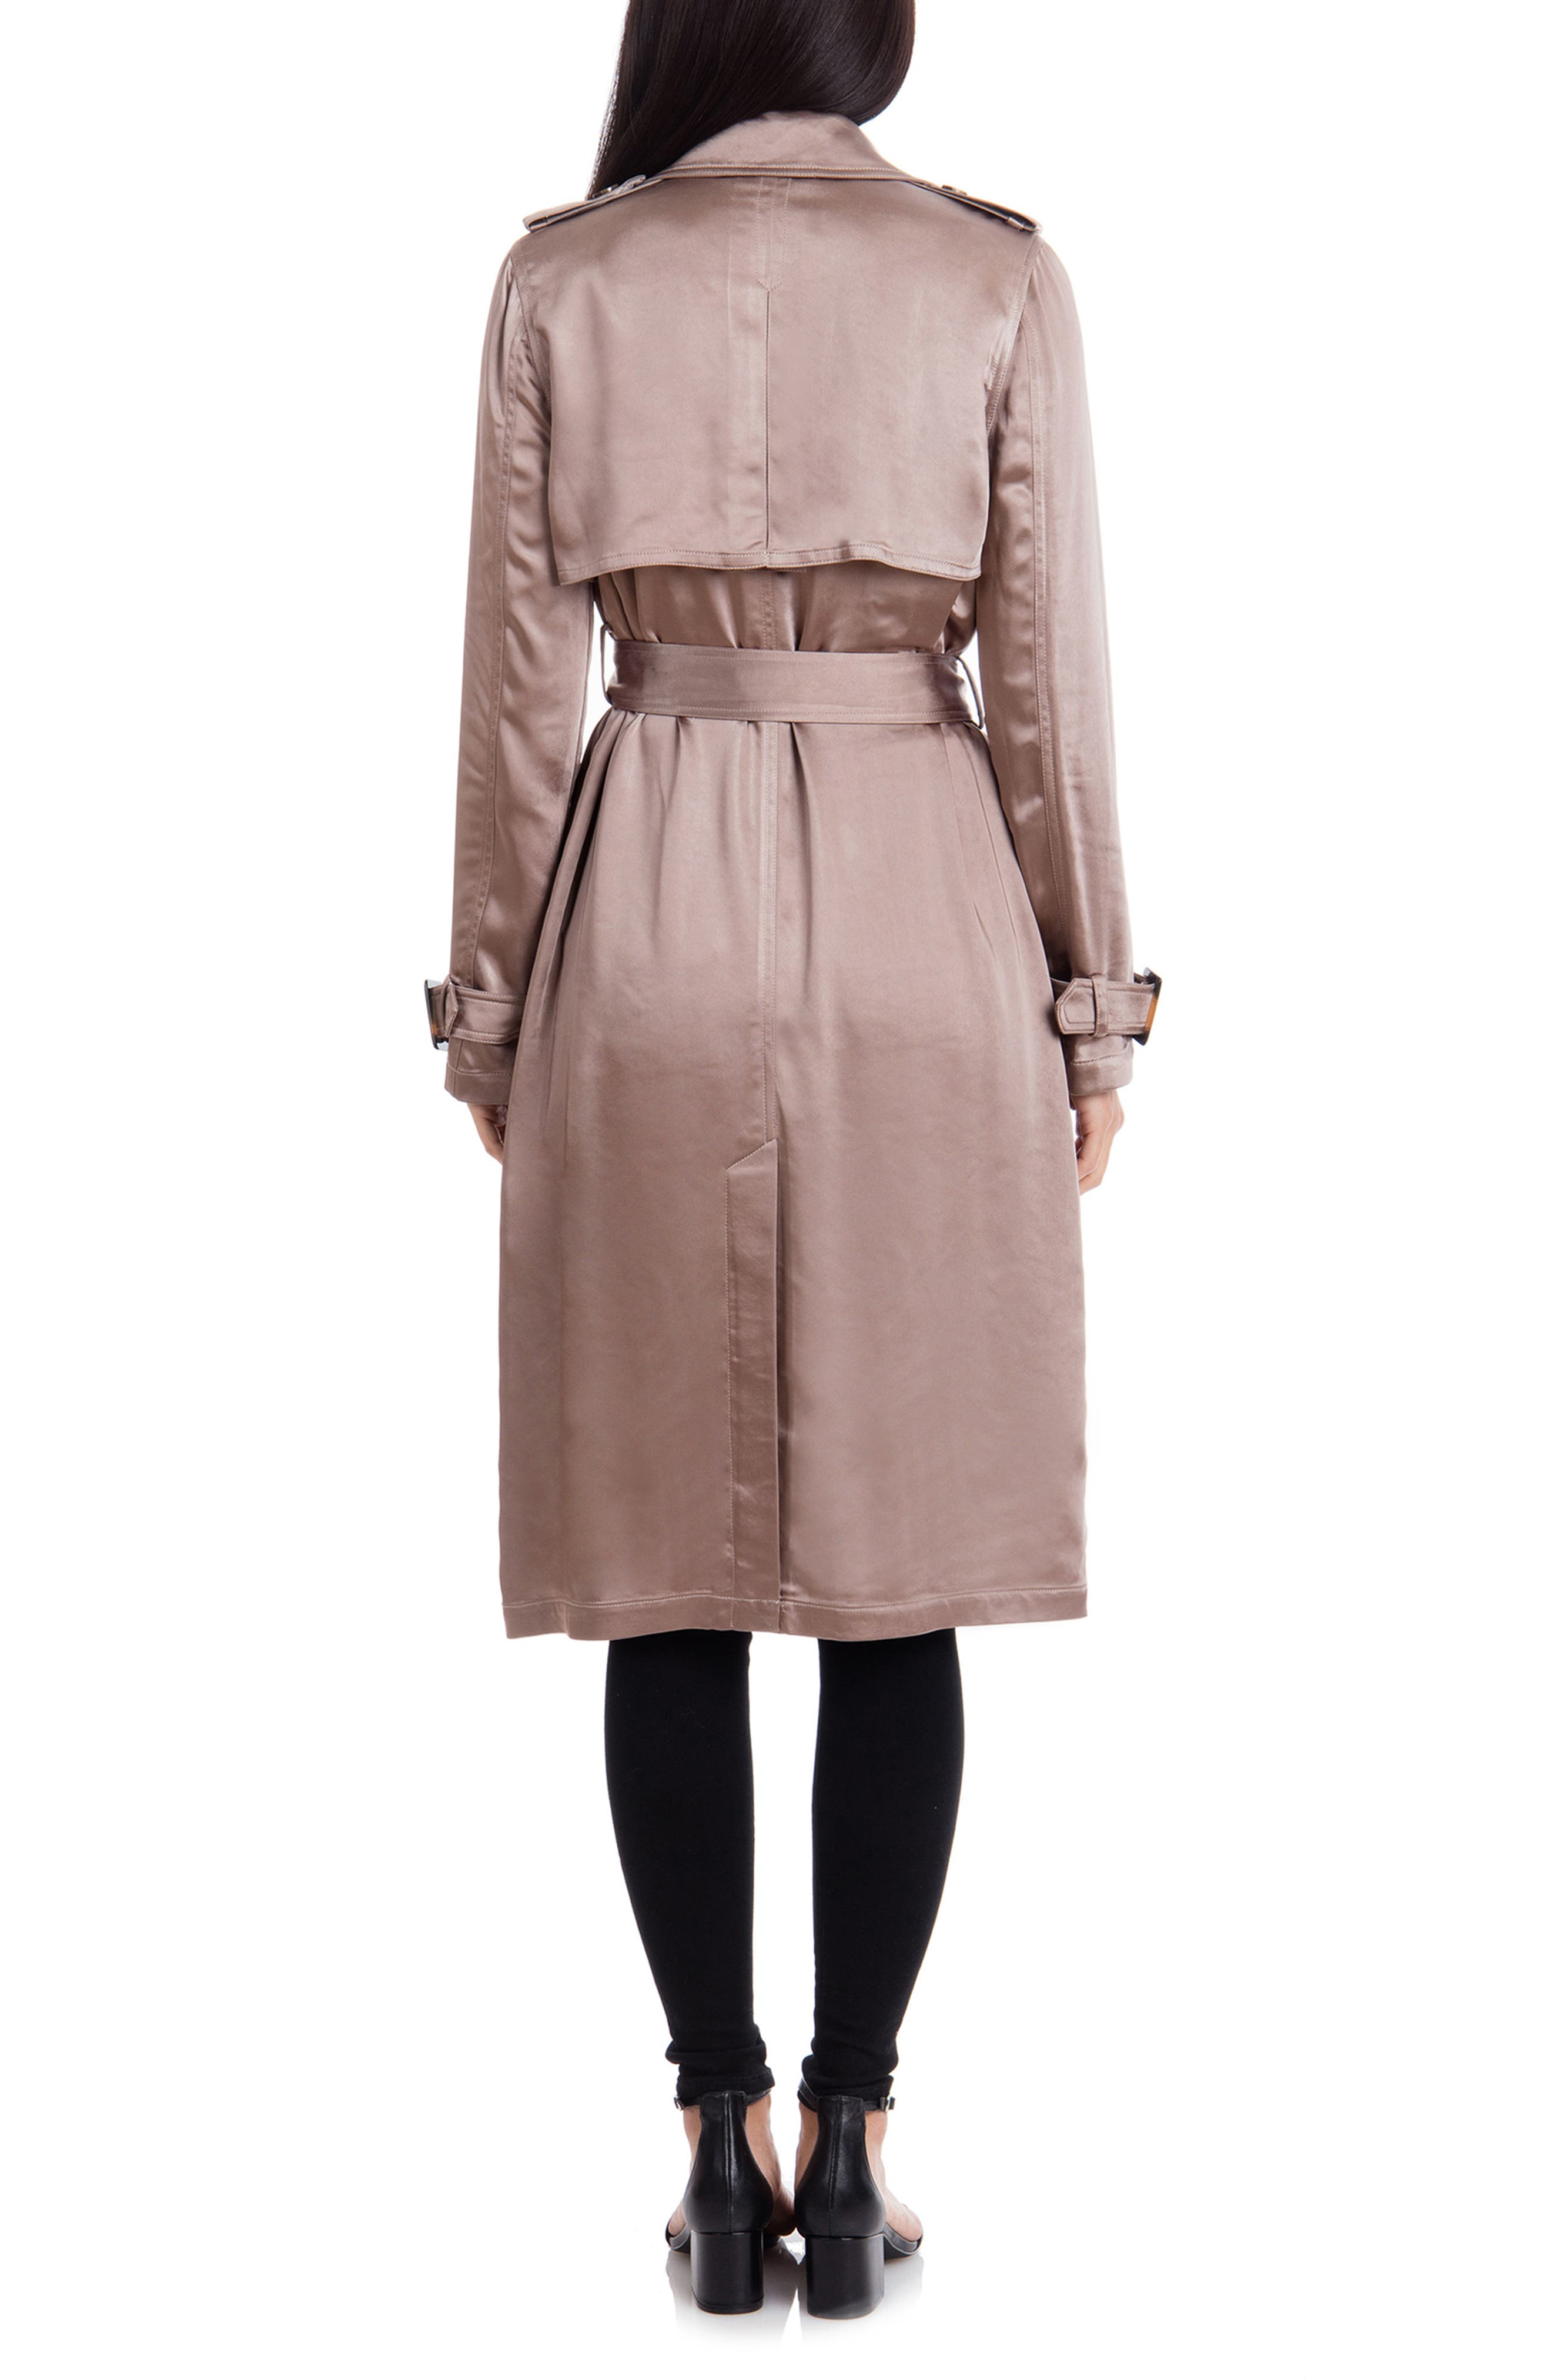 BADGLEY MISCHKA COLLECTION, Badgley Mischka Double Breasted Satin Trench Coat, Alternate thumbnail 2, color, 250